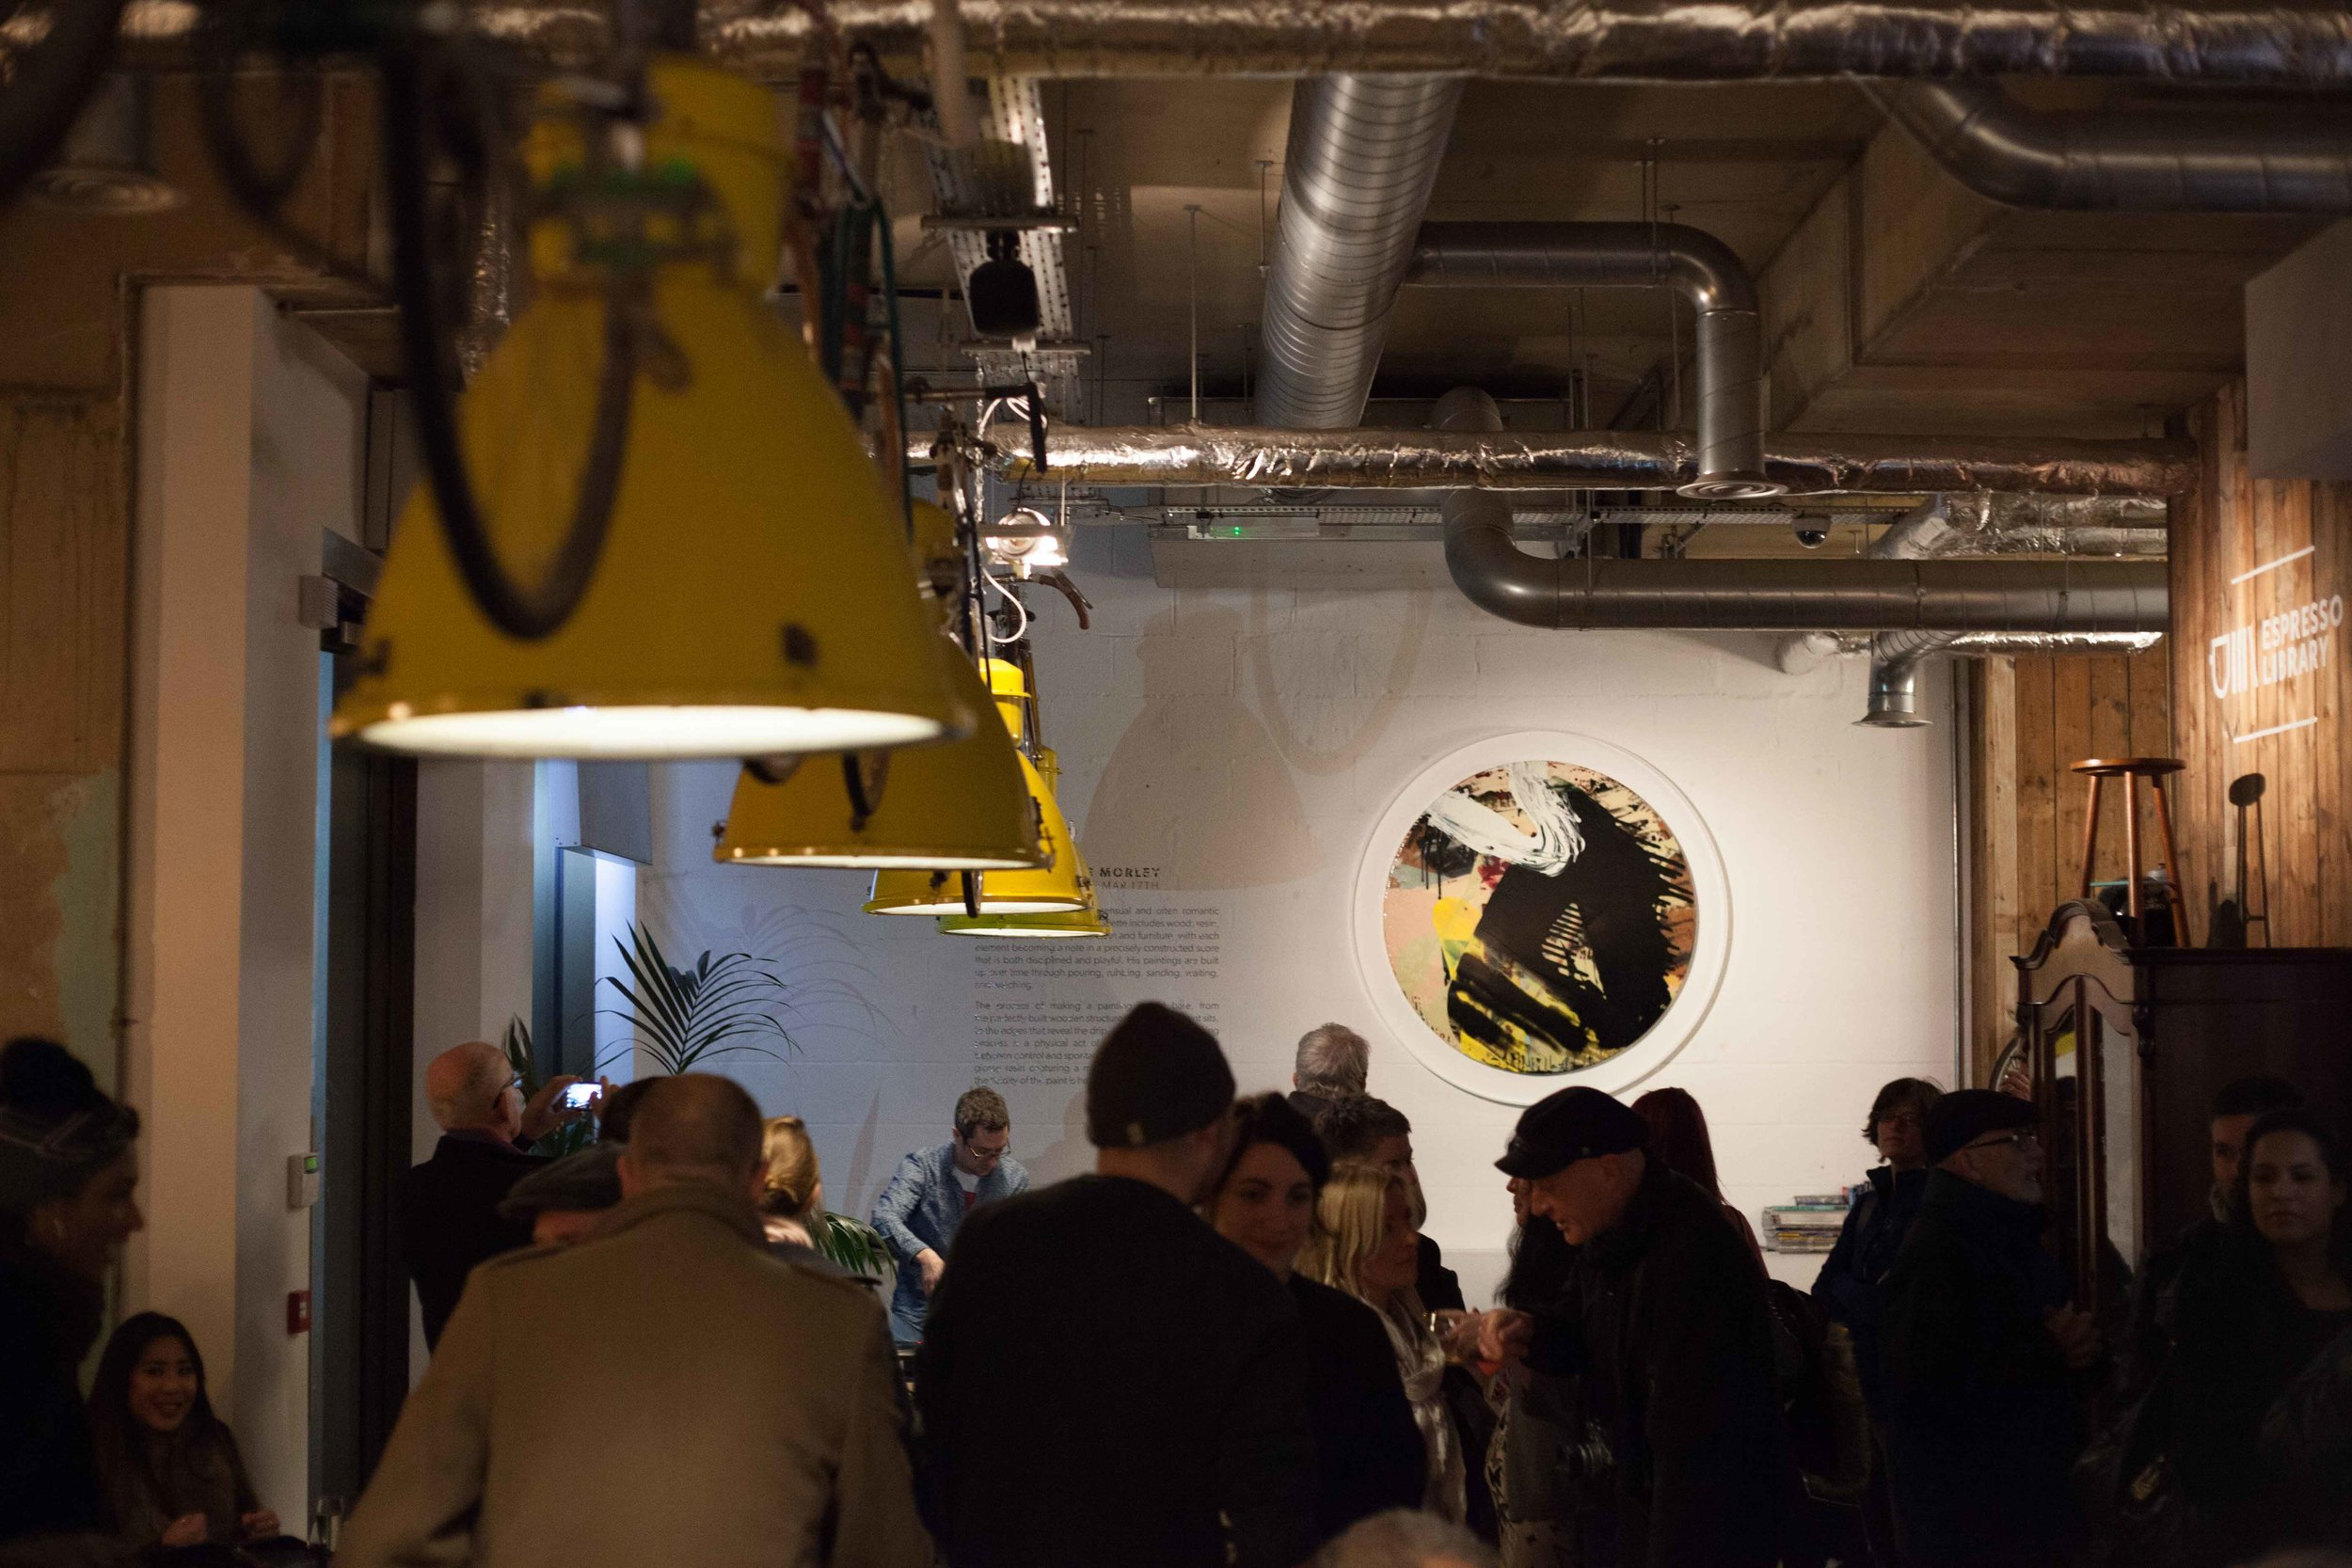 art gallery - Check out what's on show & read more about our past exhibitions.